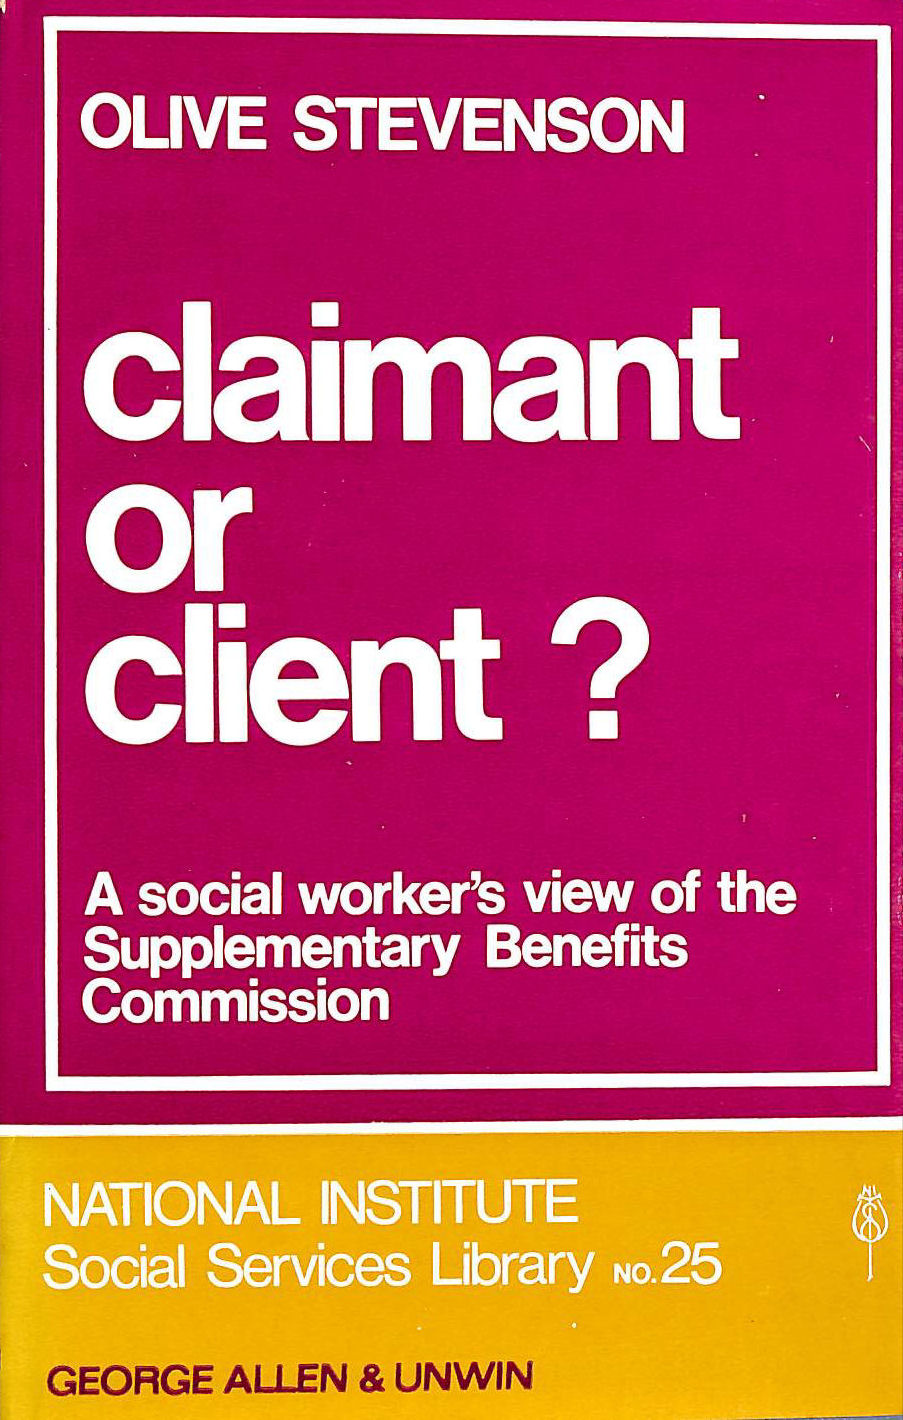 Image for Claimant or Client?: Social Worker's View of the Supplementary Benefits Commission (National Institute Social Services Library)